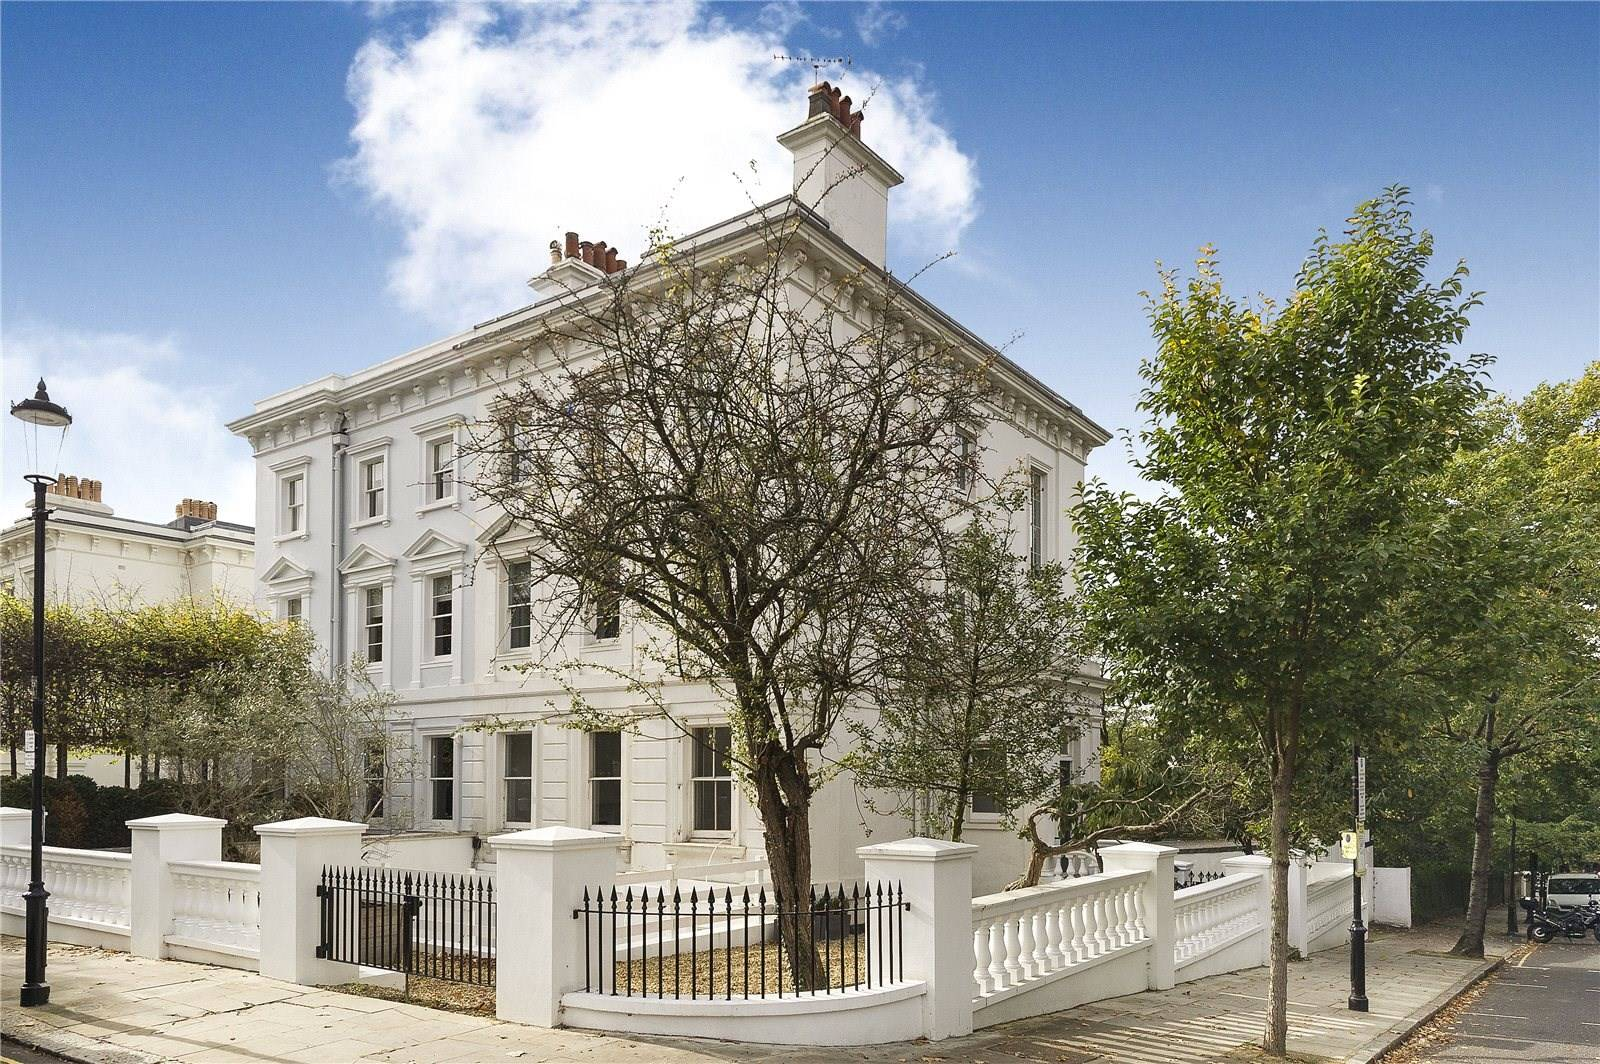 This 19th-century Grade II-listed house in London's Notting Hill is distinguished by the symmetry, scale, and ornamentation of the Greek Revival movement.